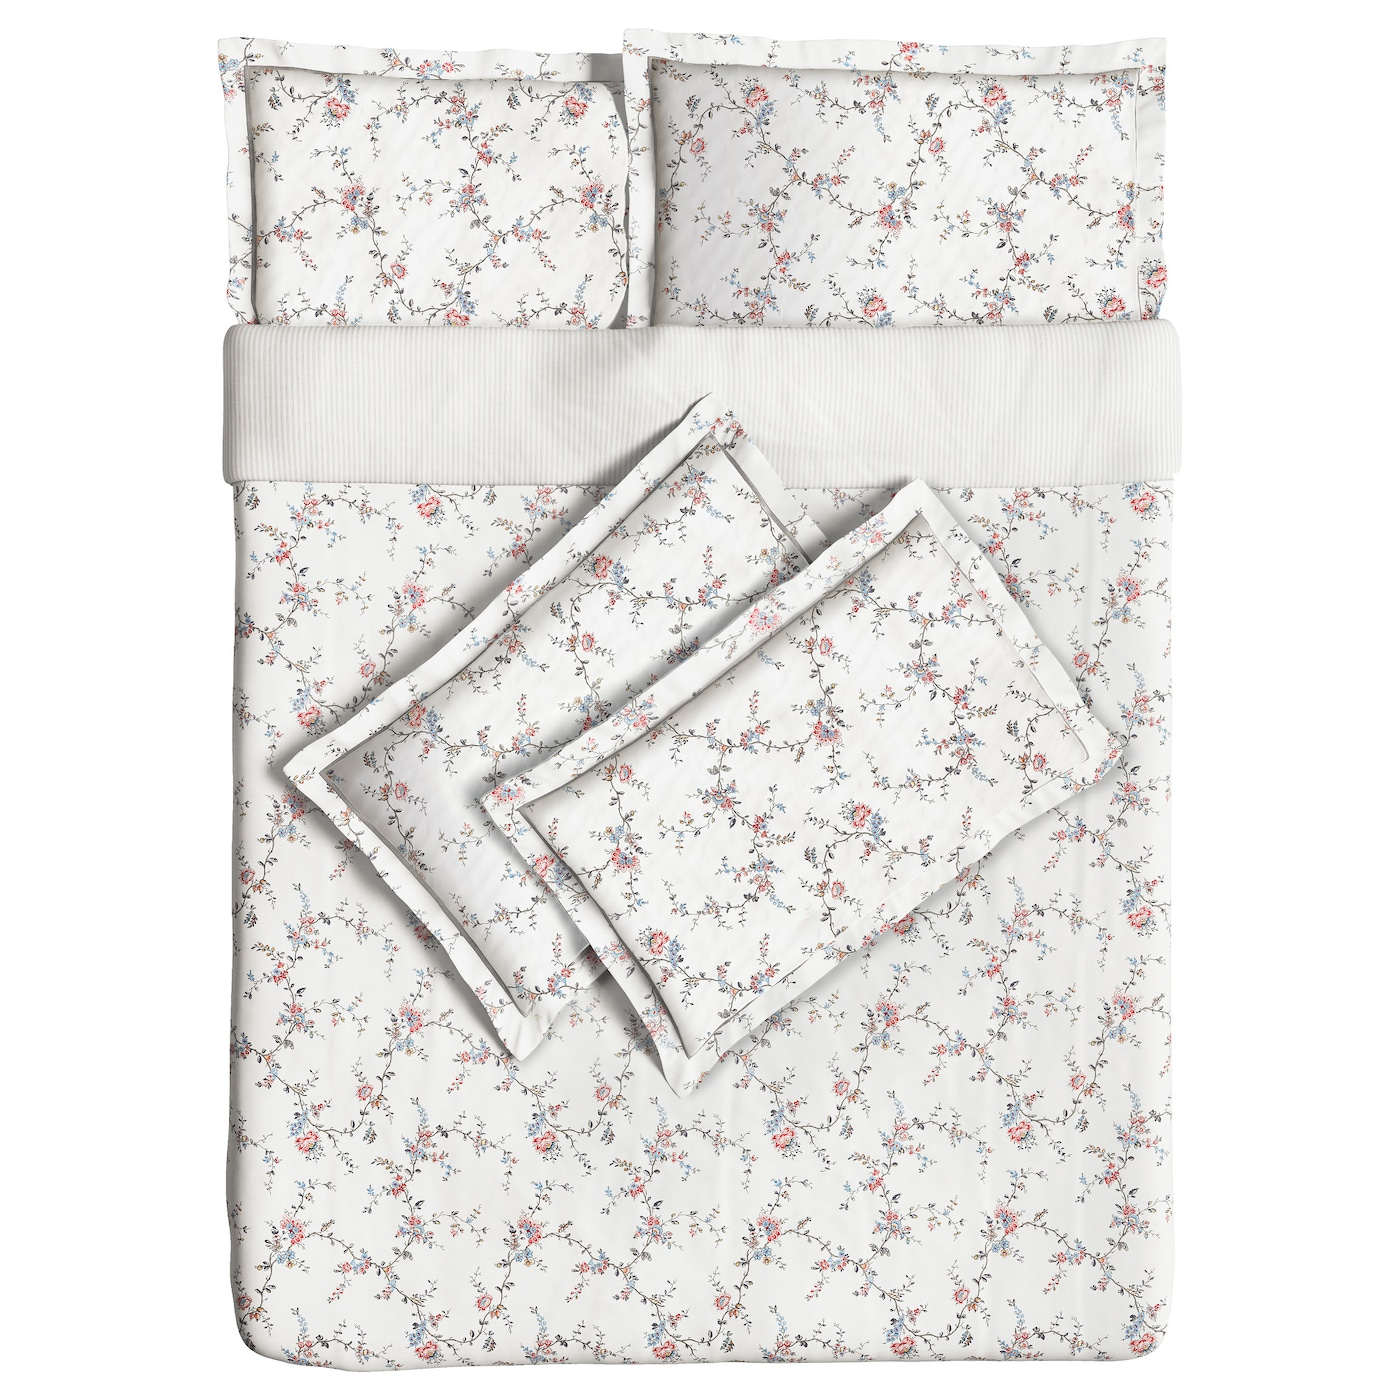 sten rt quilt cover and 4 pillowcases flower 200x200 50x80 cm ikea. Black Bedroom Furniture Sets. Home Design Ideas